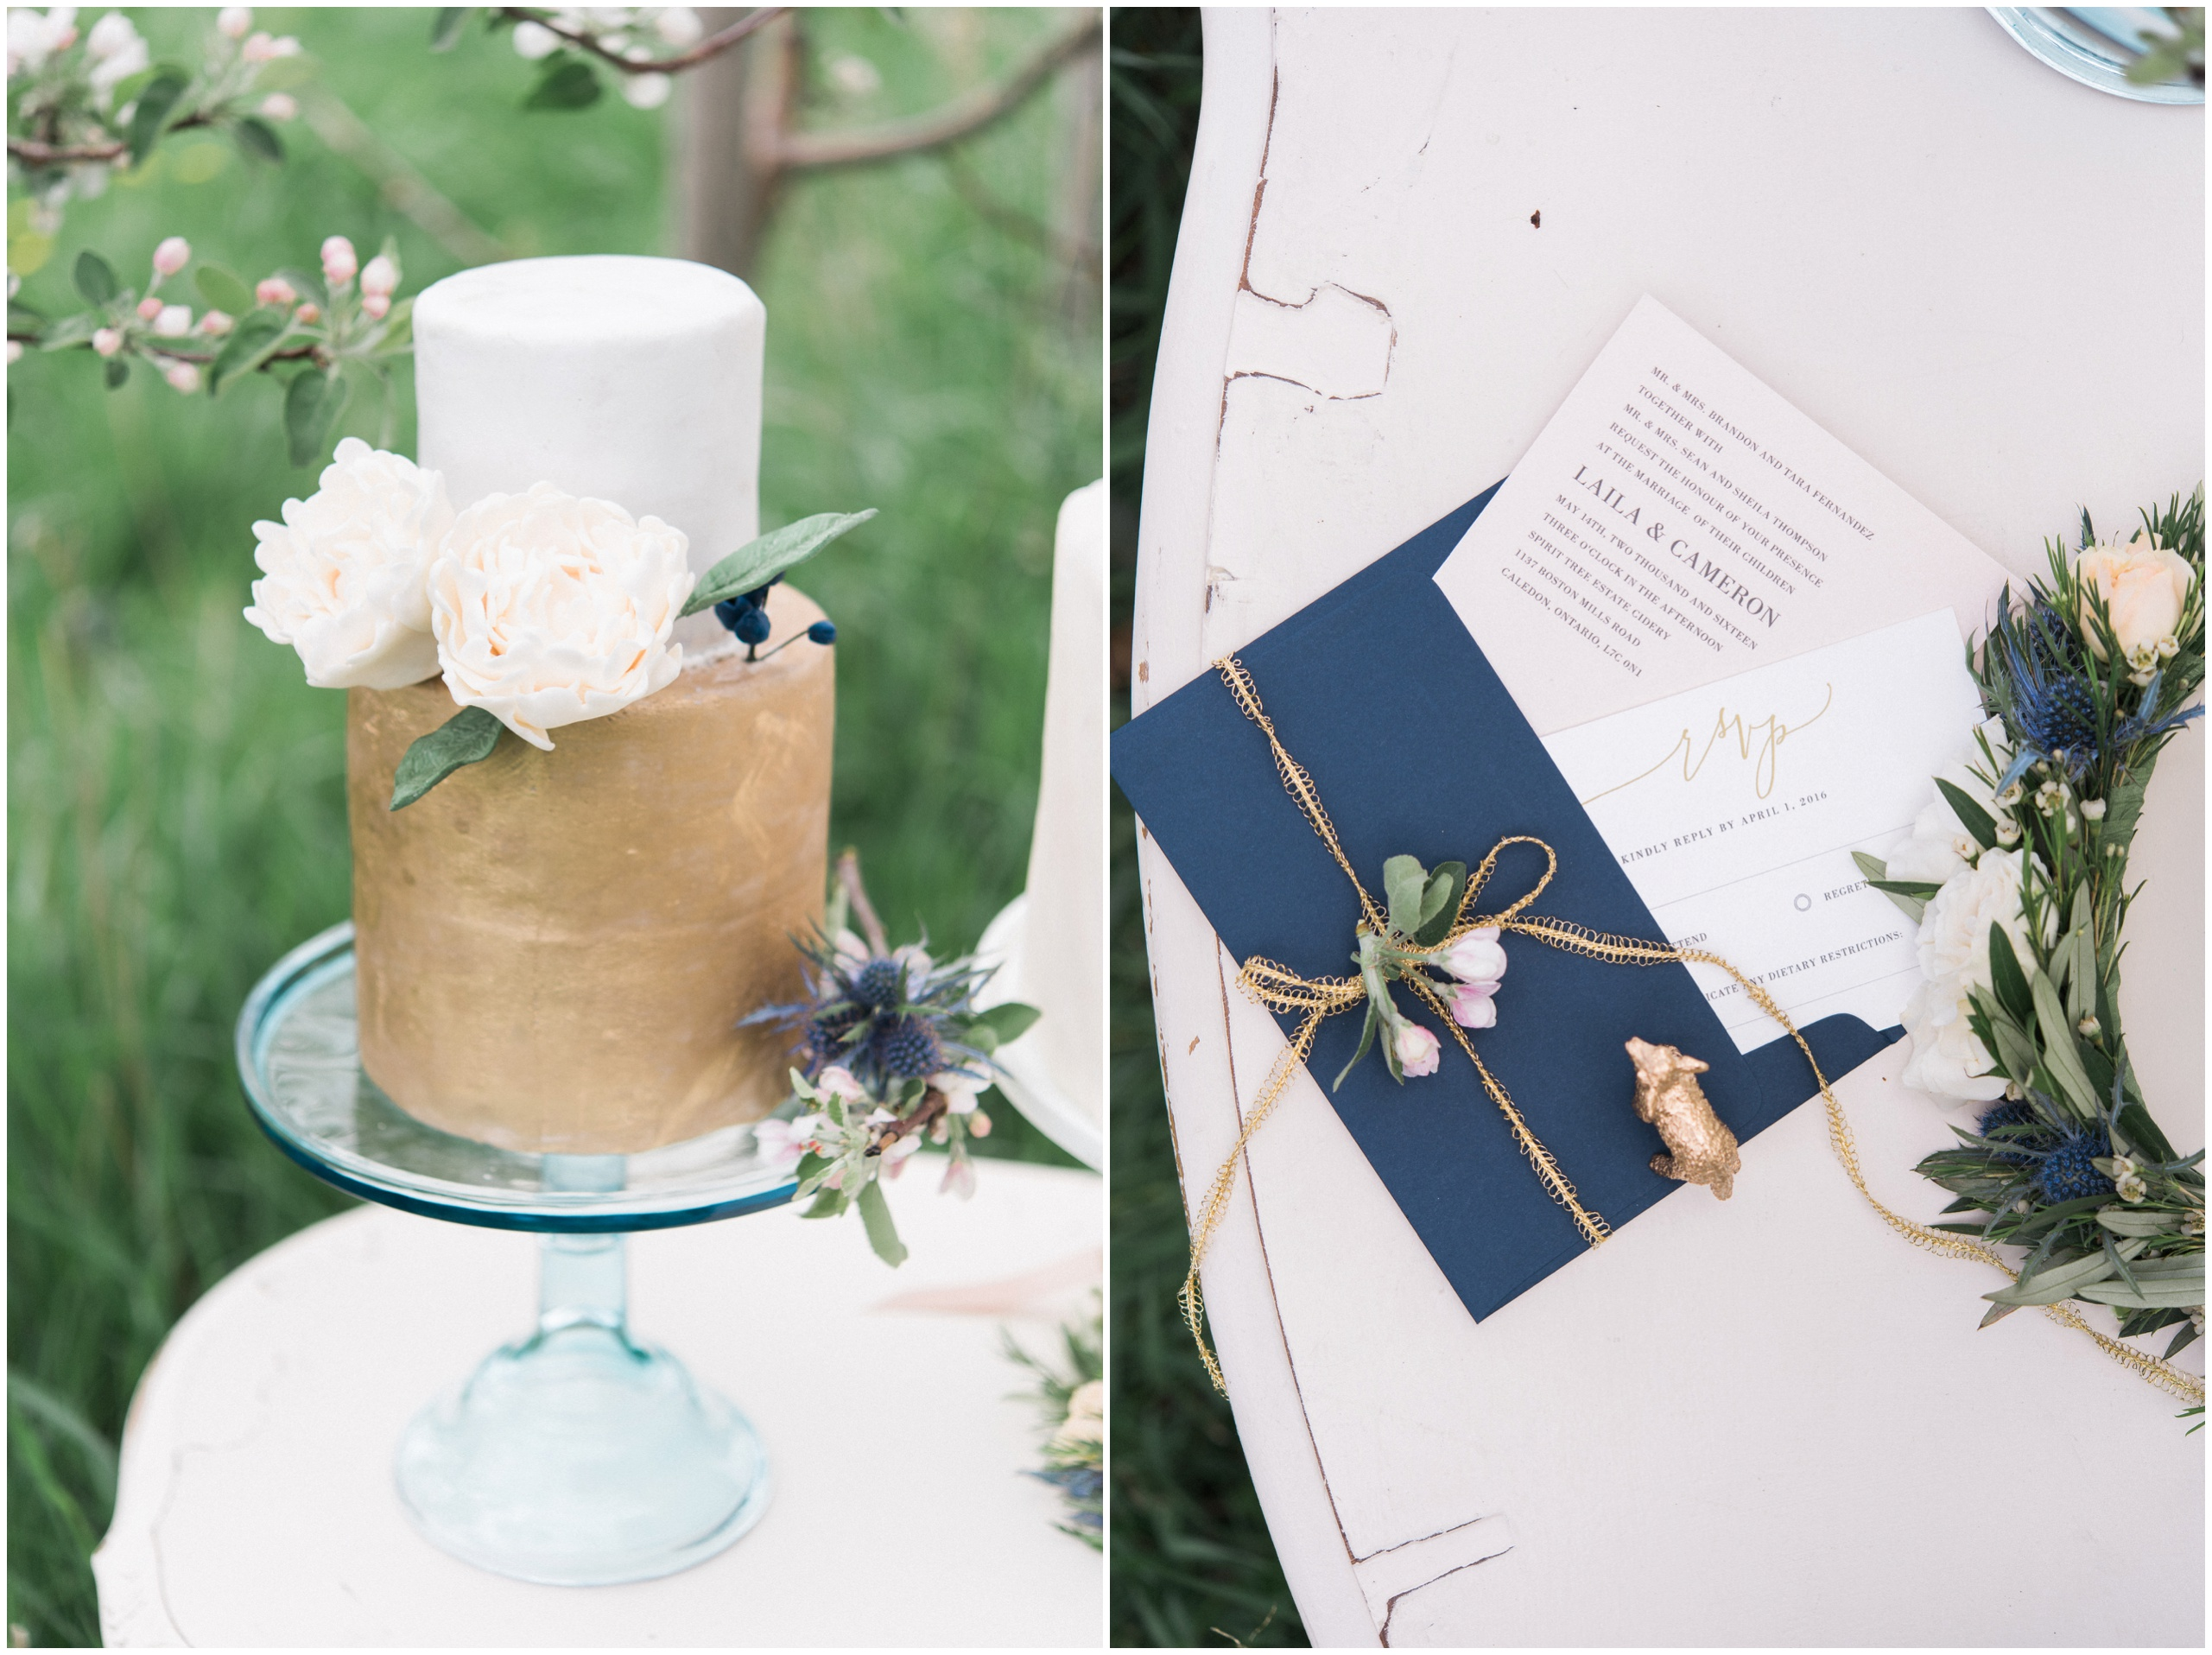 Wedding inspiration: gold and white cake with fondant peonies and blue thistle; navy and gold wedding invitation suite.